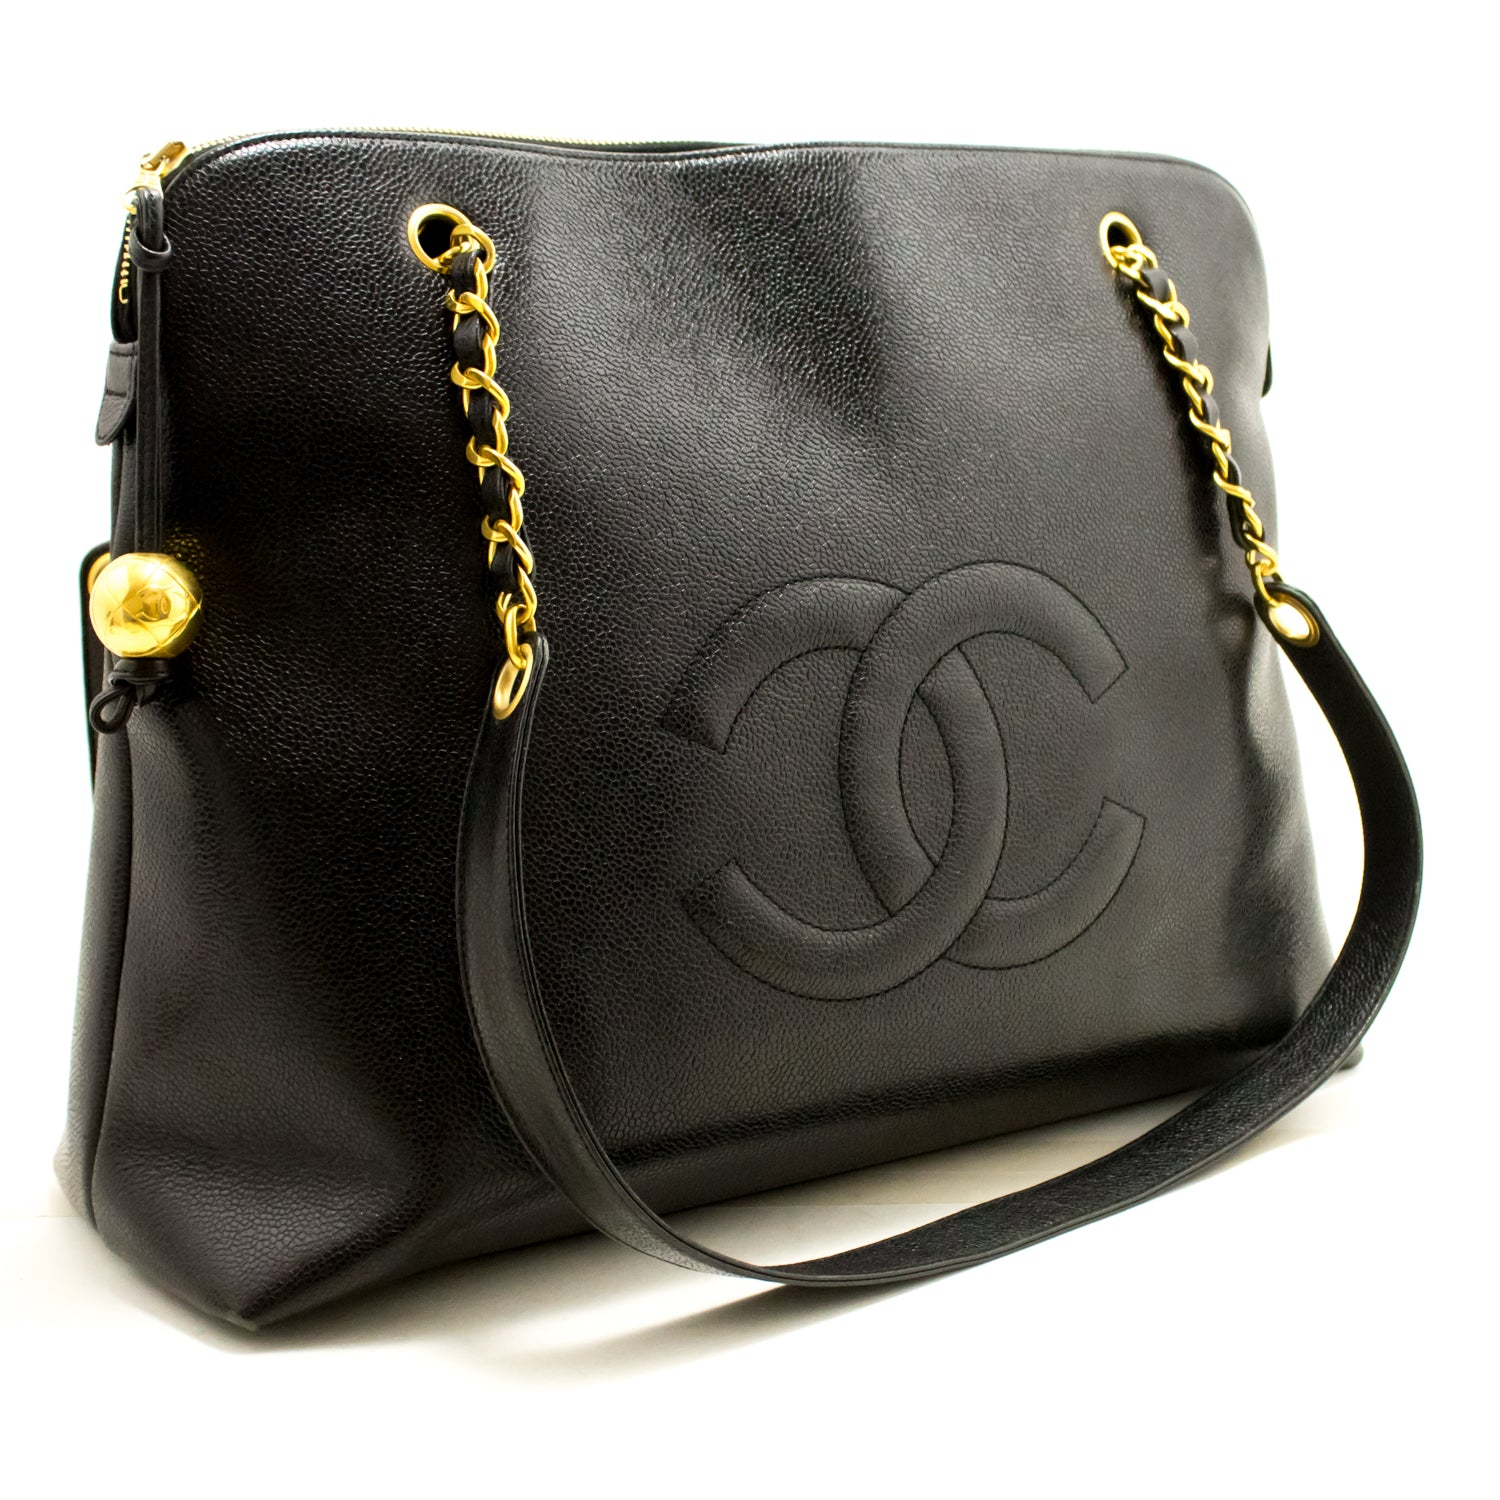 62871cb6f3a2f6 ... CHANEL Caviar Jumbo Large Chain Shoulder Bag Black Gold Zip L93-Chanel-hannari-  ...